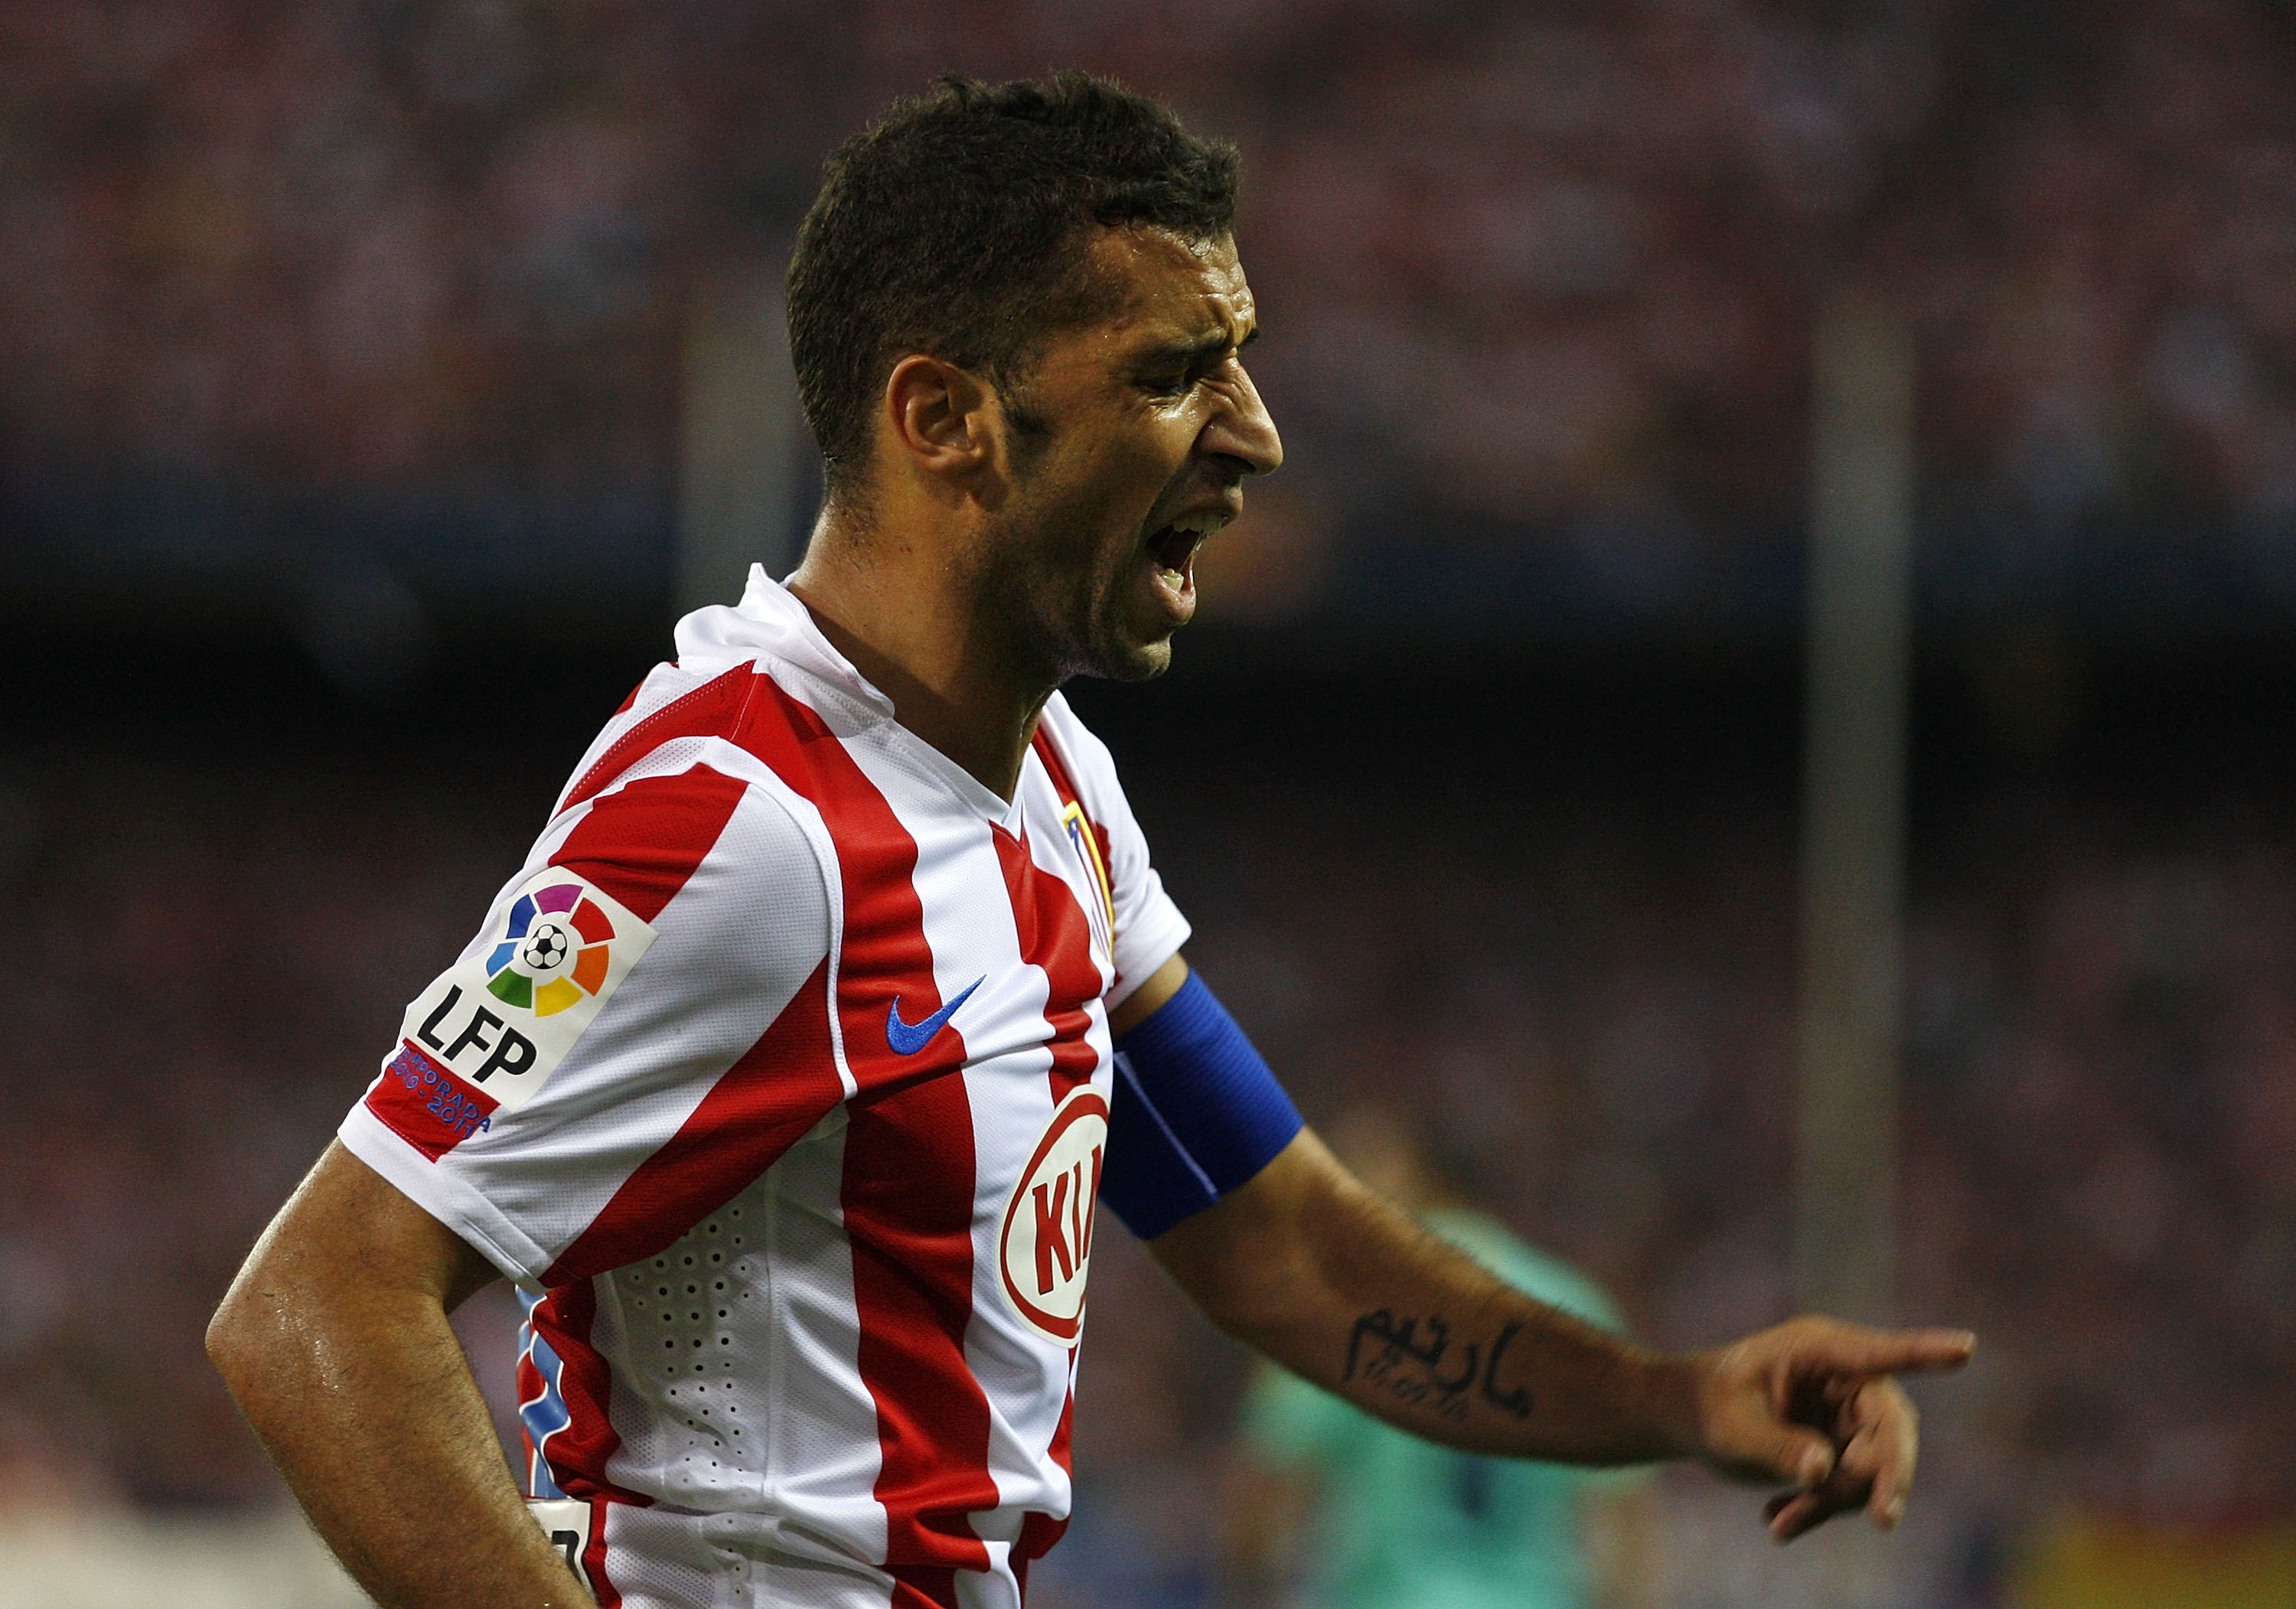 MADRID, SPAIN - SEPTEMBER 19: Simao Sabrosao of Atletico Madrid reacts during the La Liga match between Atletico Madrid and Barcelona at Vicente Calderon Stadium on September 19, 2010 in Madrid, Spain. (Photo by Angel Martinez/Getty Images)